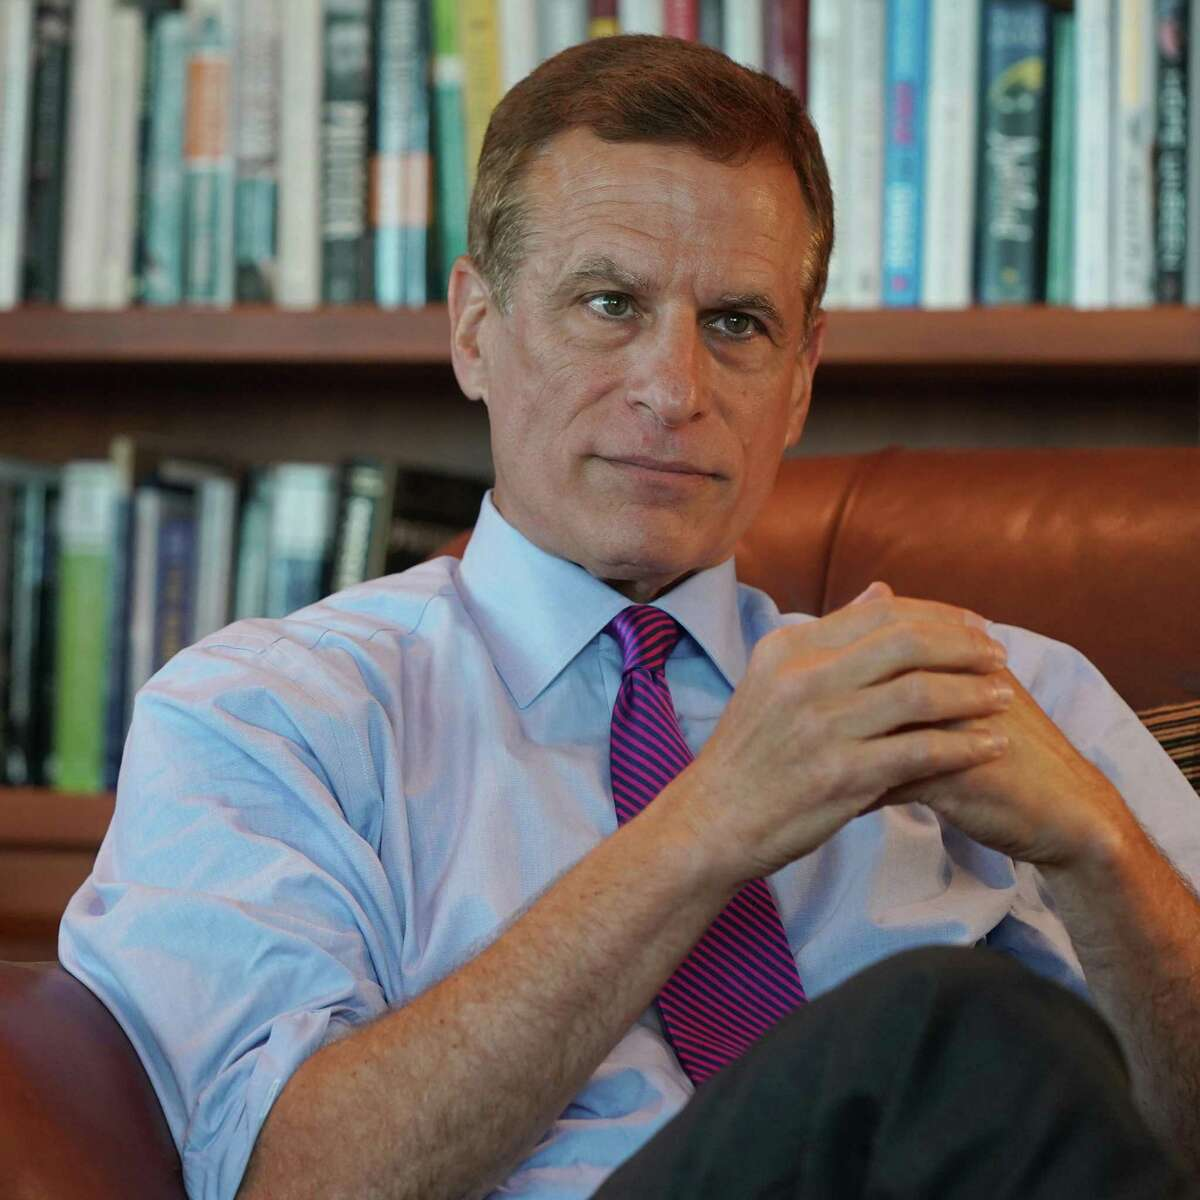 Bank President president Robert Kaplan is pictured during an interview at the Federal Reserve Bank of Dallas, at his office in downtown Dallas on Friday, August 16, 2019. CREDIT: Louis DeLuca for The Houston Chronicle